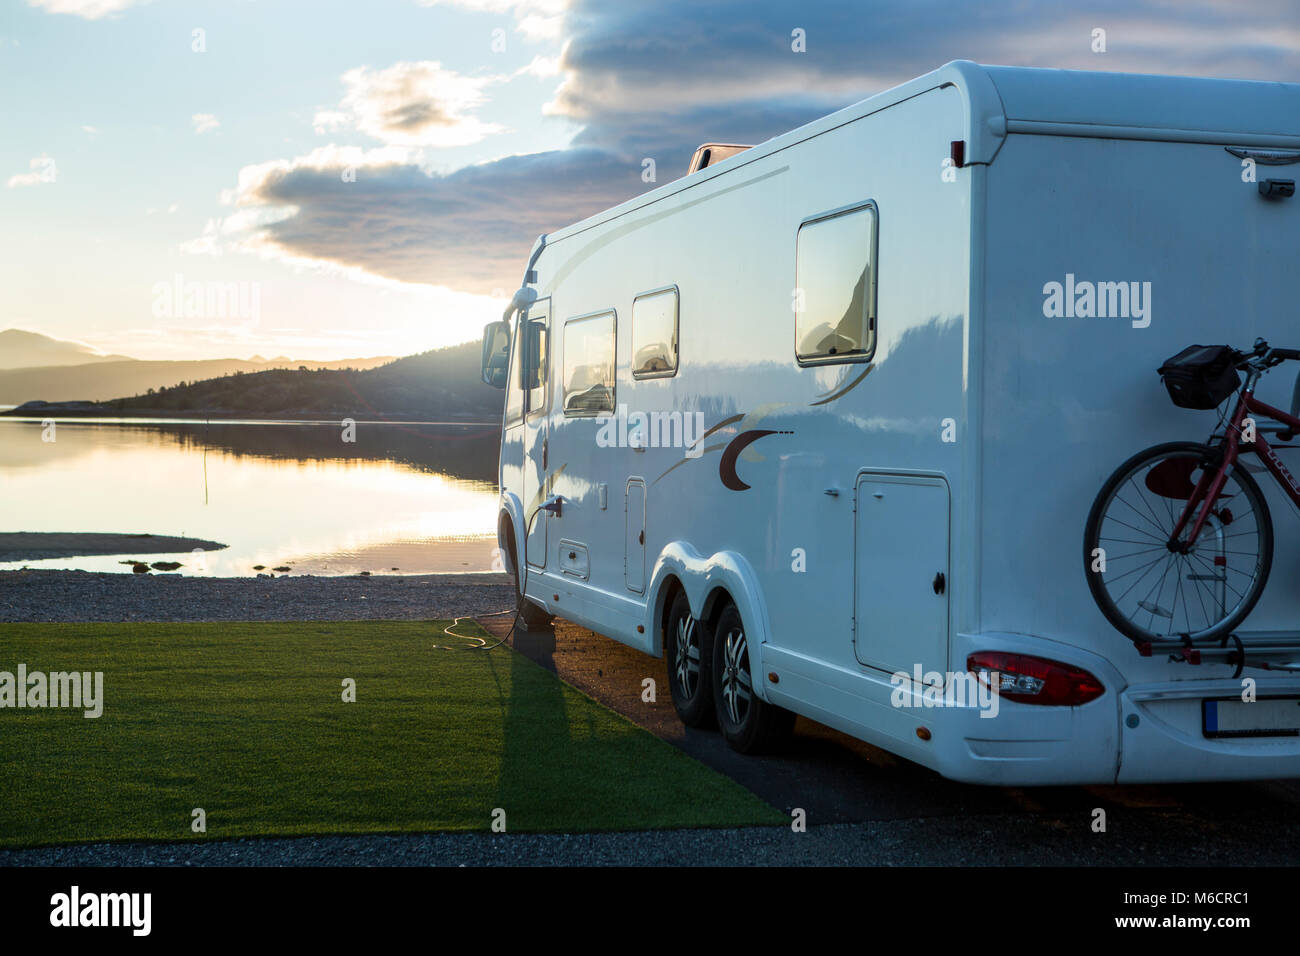 Large camper Van parking near the water at a campsite for motorhomes. Its sunset and the water is calm. - Stock Image